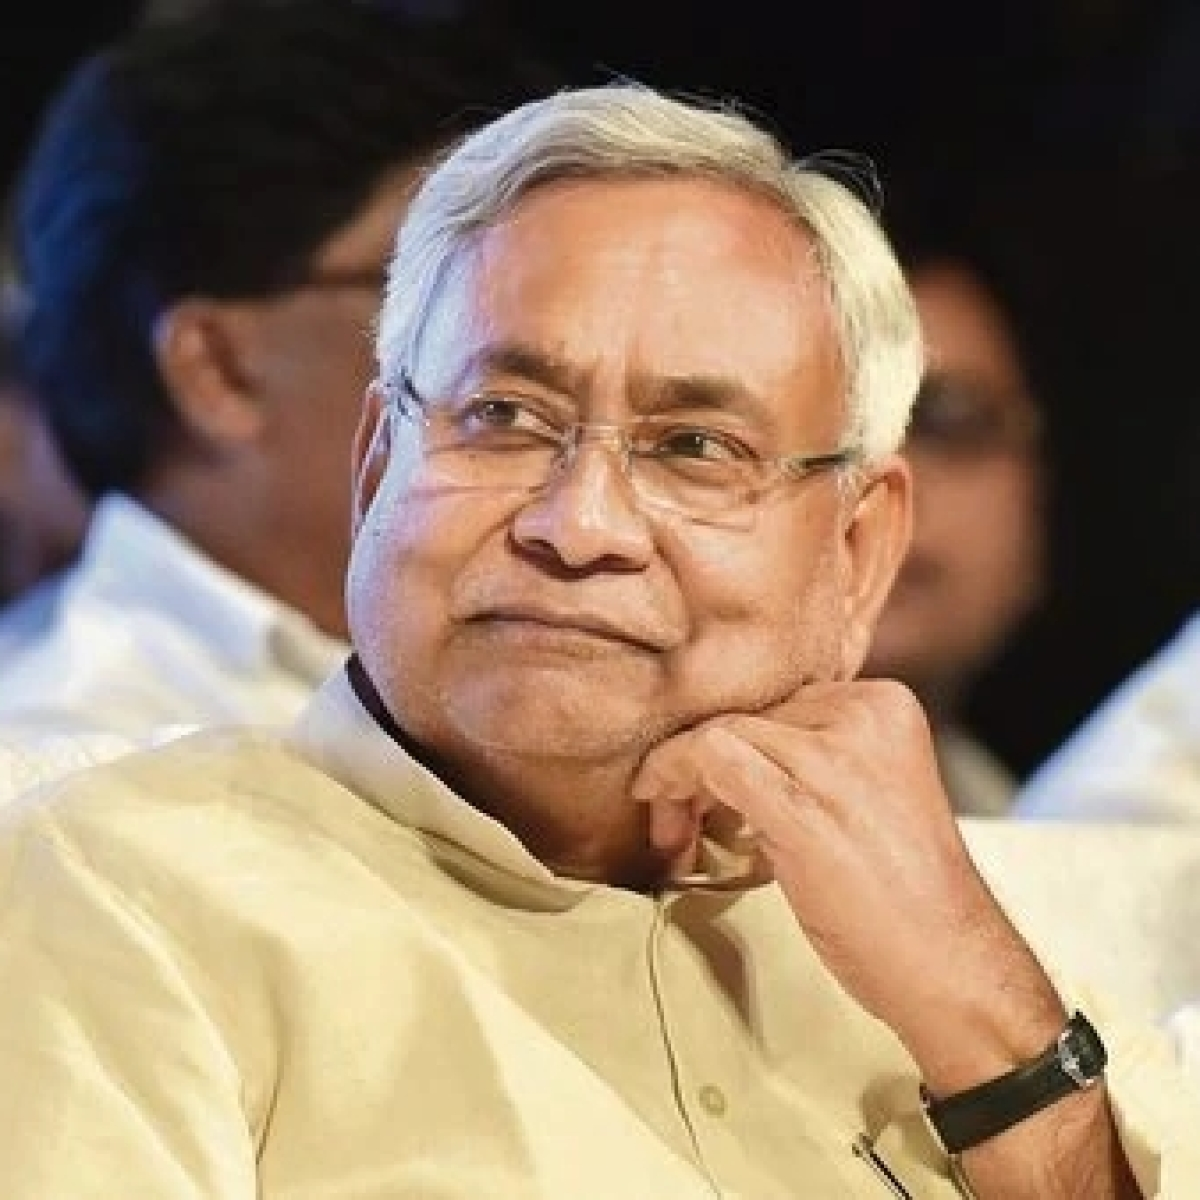 Bihar CM Nitish Kumar tests negative for COVID-19